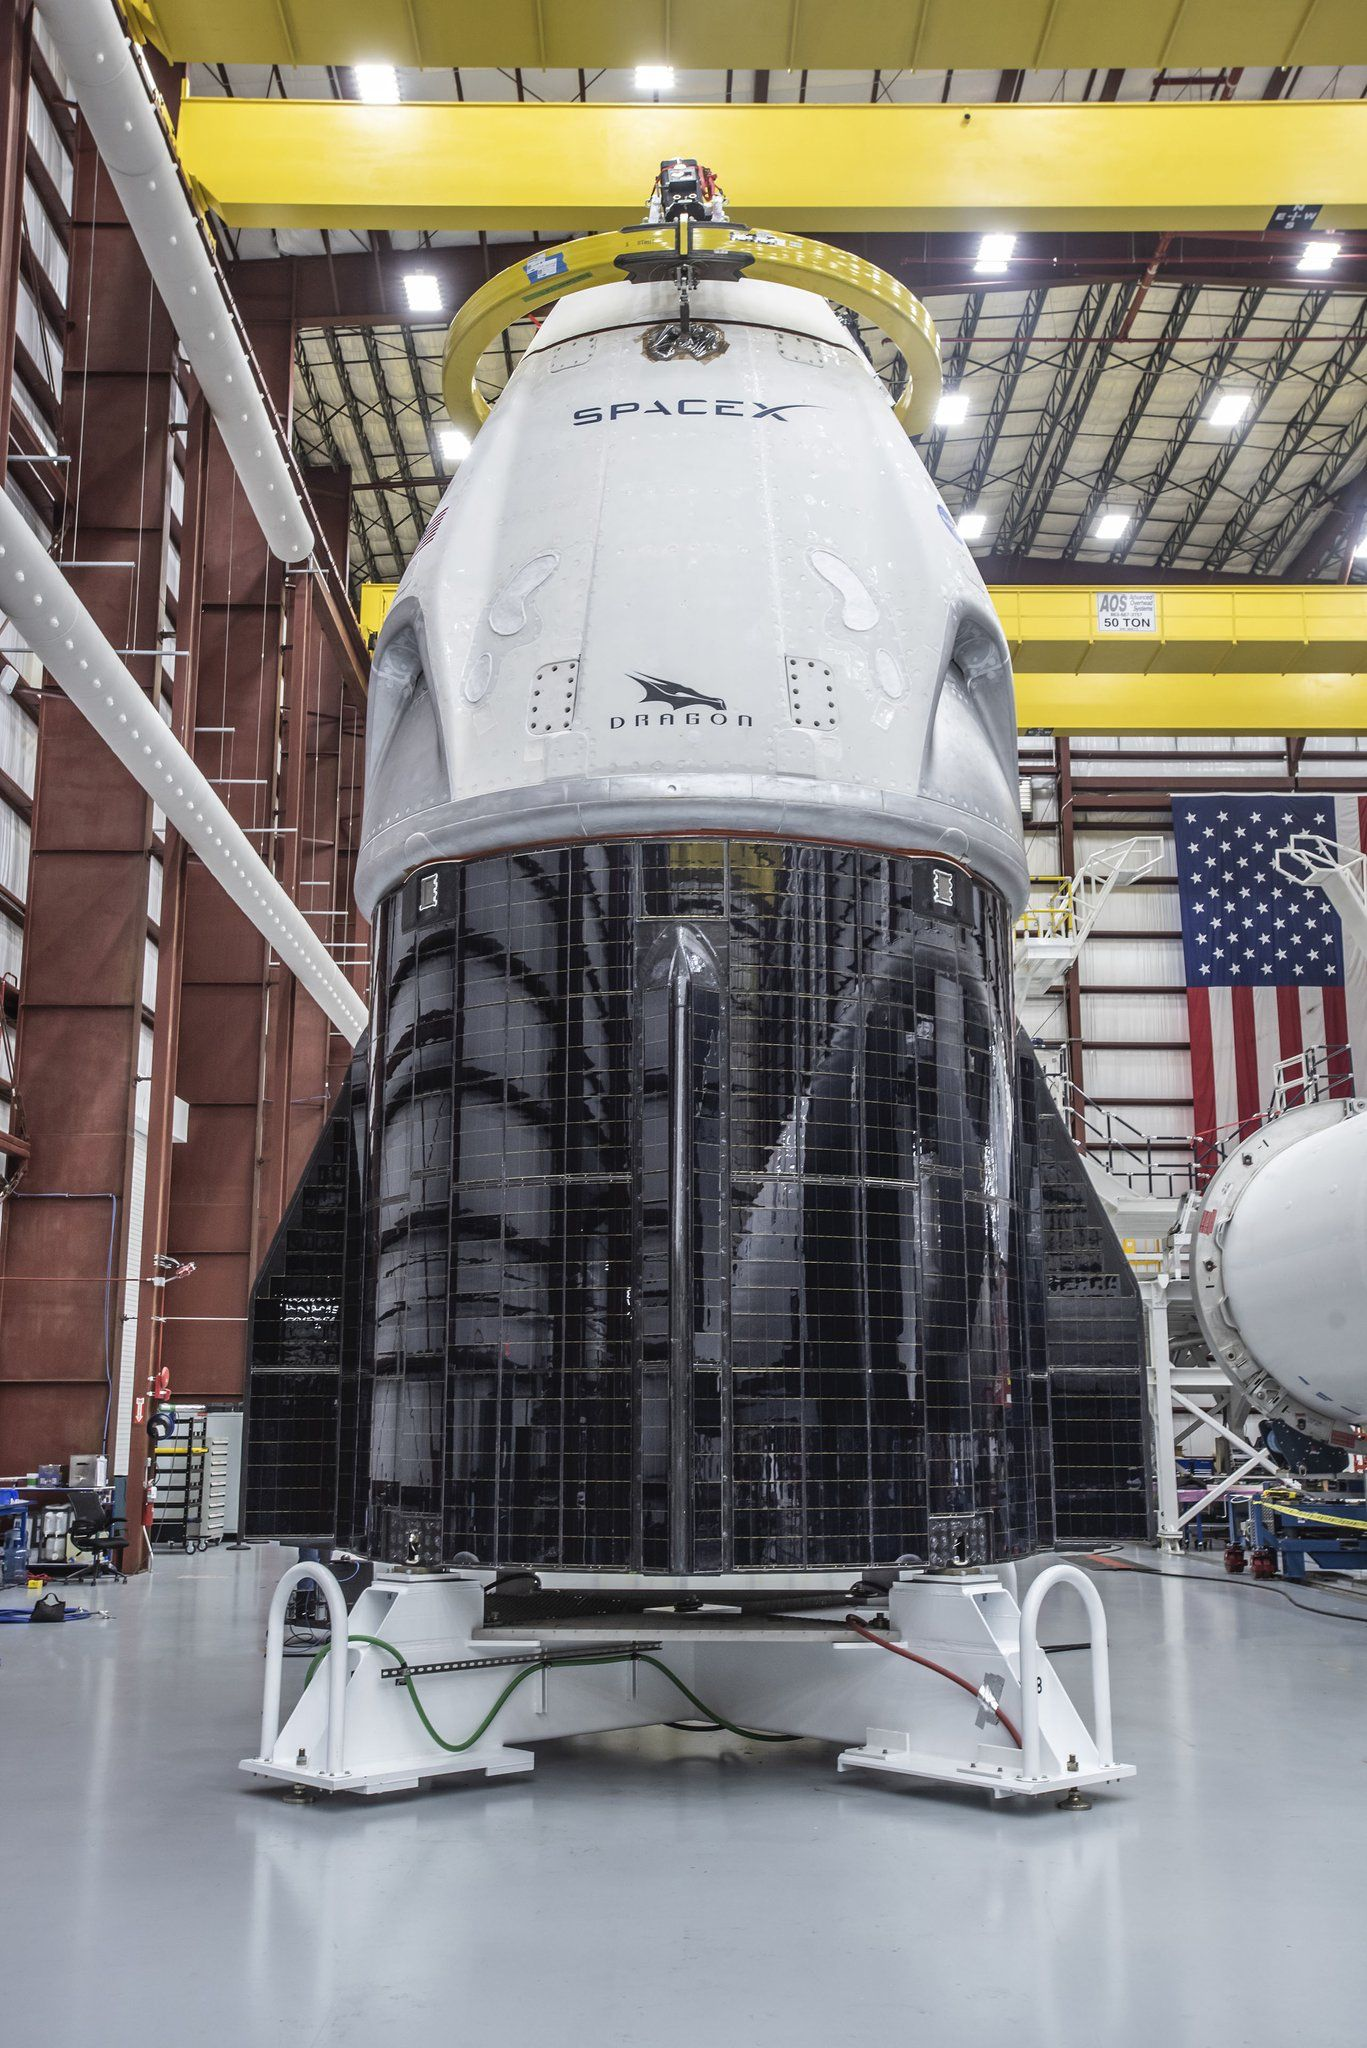 Pin By Gaming Champ On Spacex With Images Spacex Space Flight